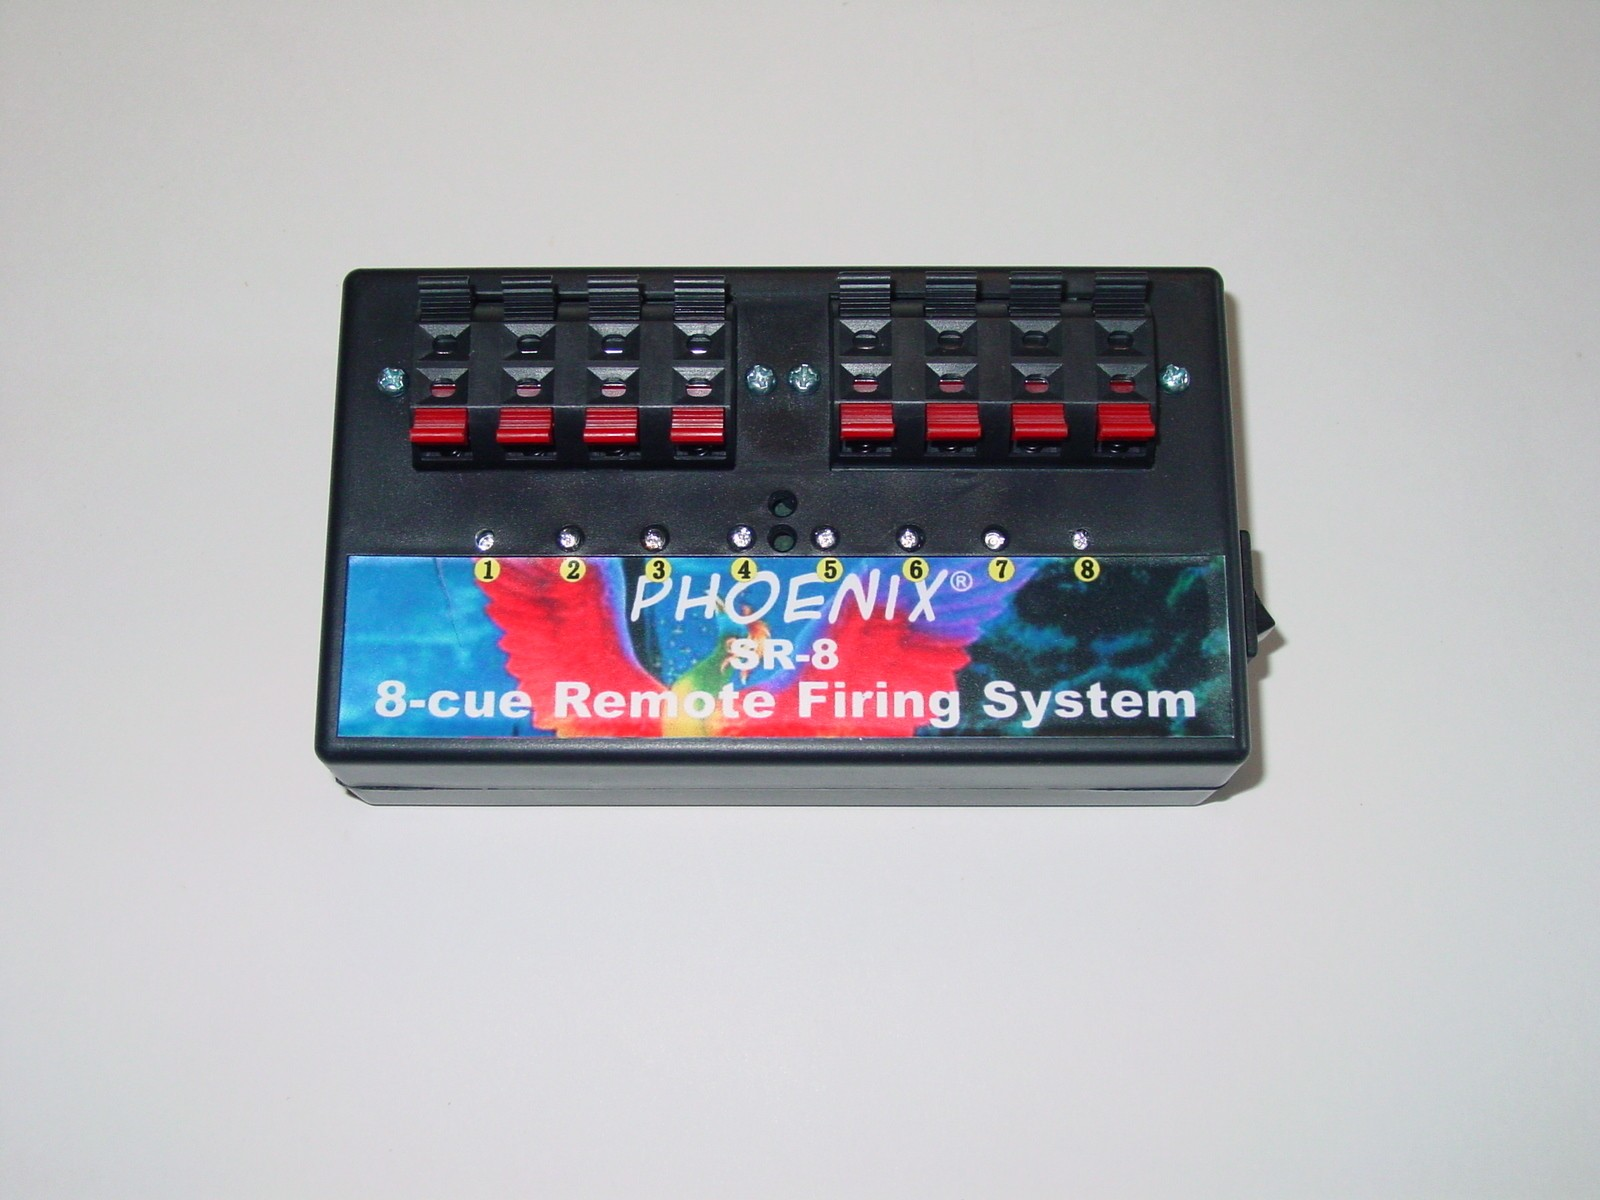 Phoenix SR-8 Add-on Receiver